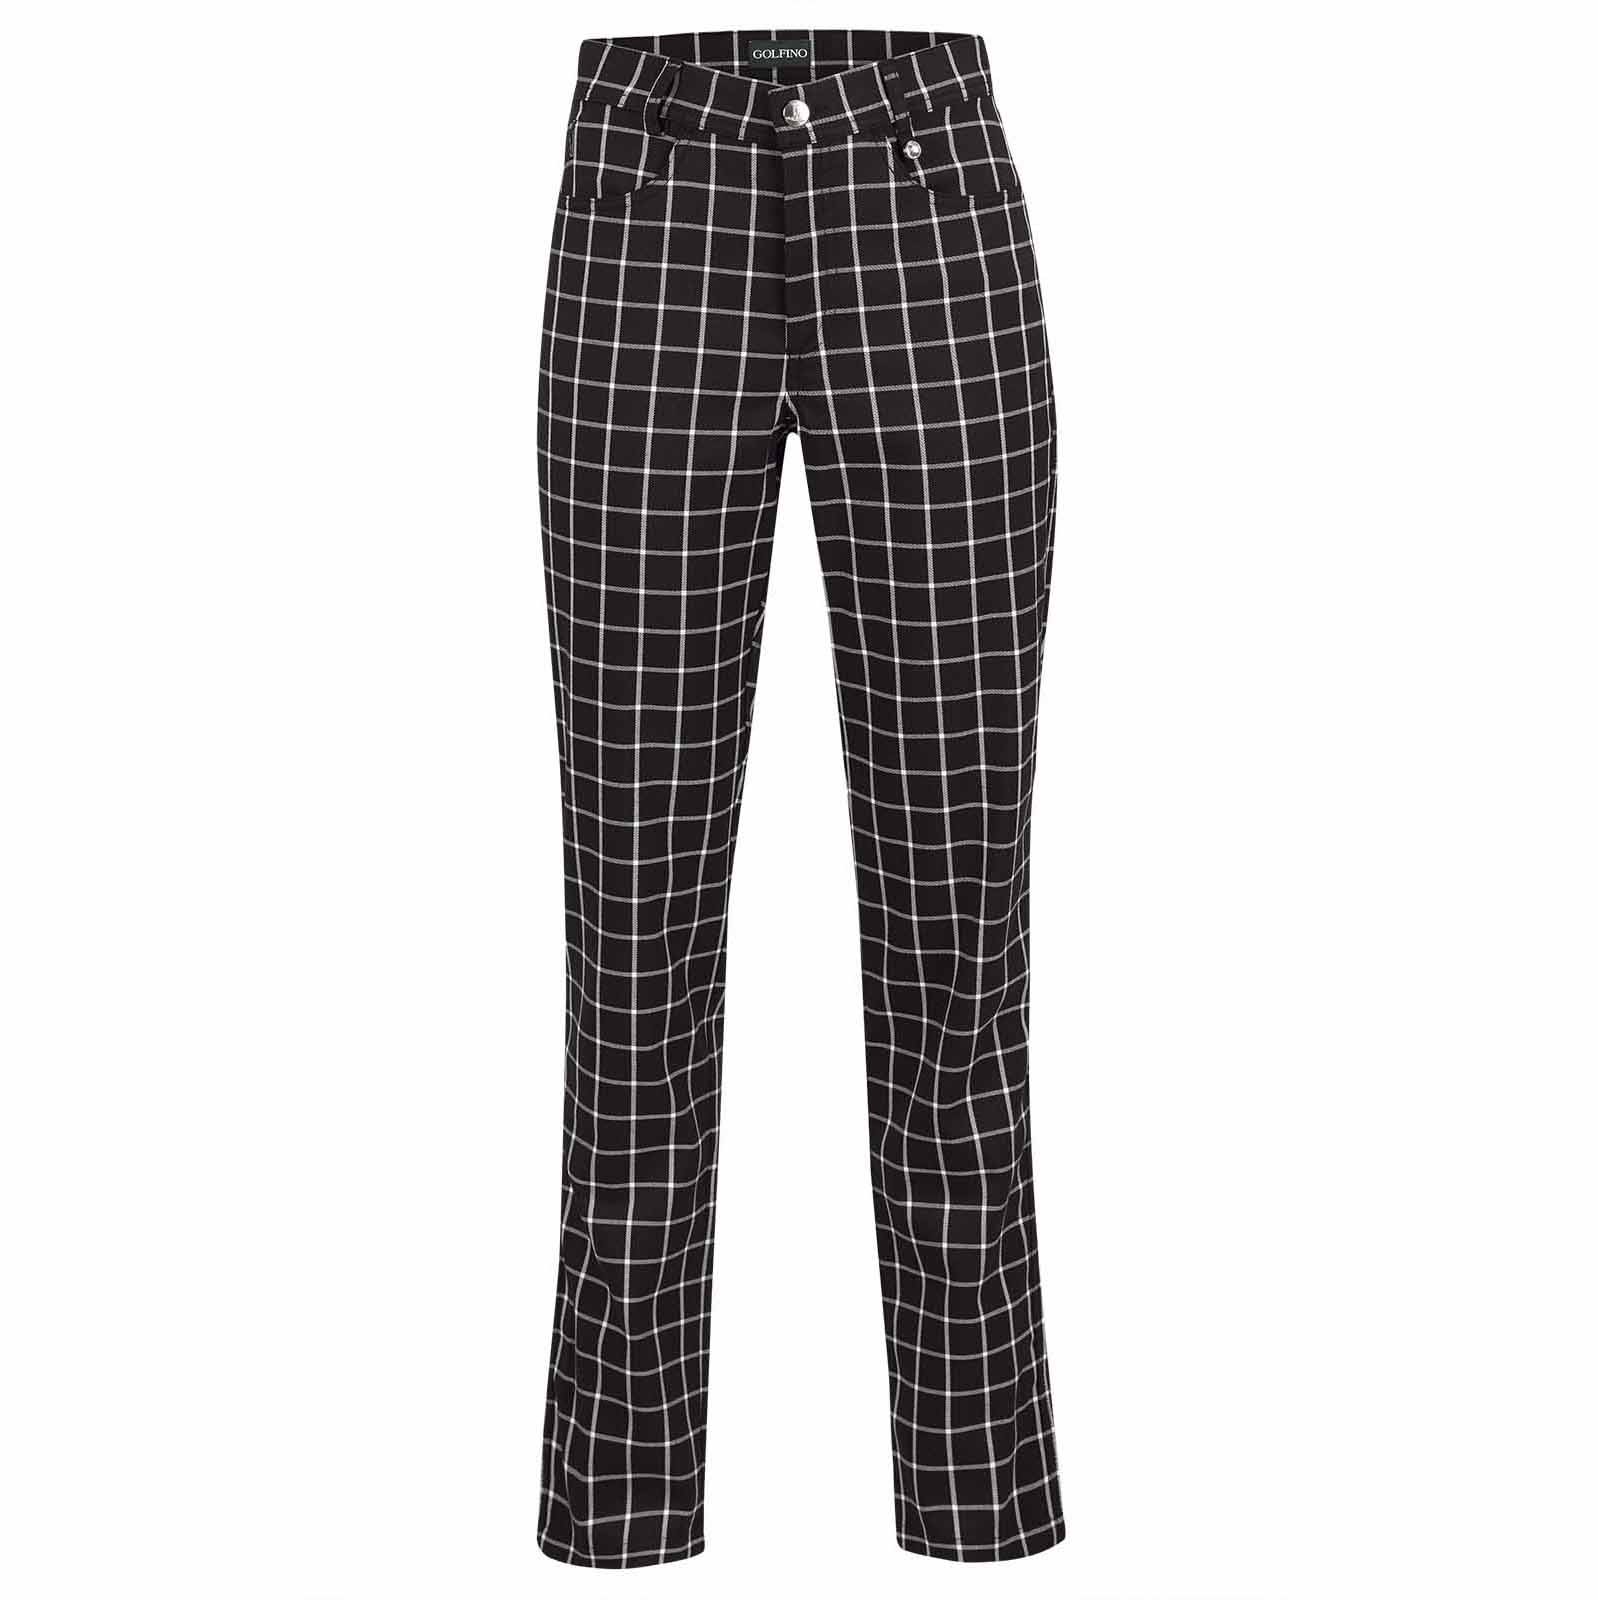 Ladies' waterproof 7/8 checked golf trousers with stretch function